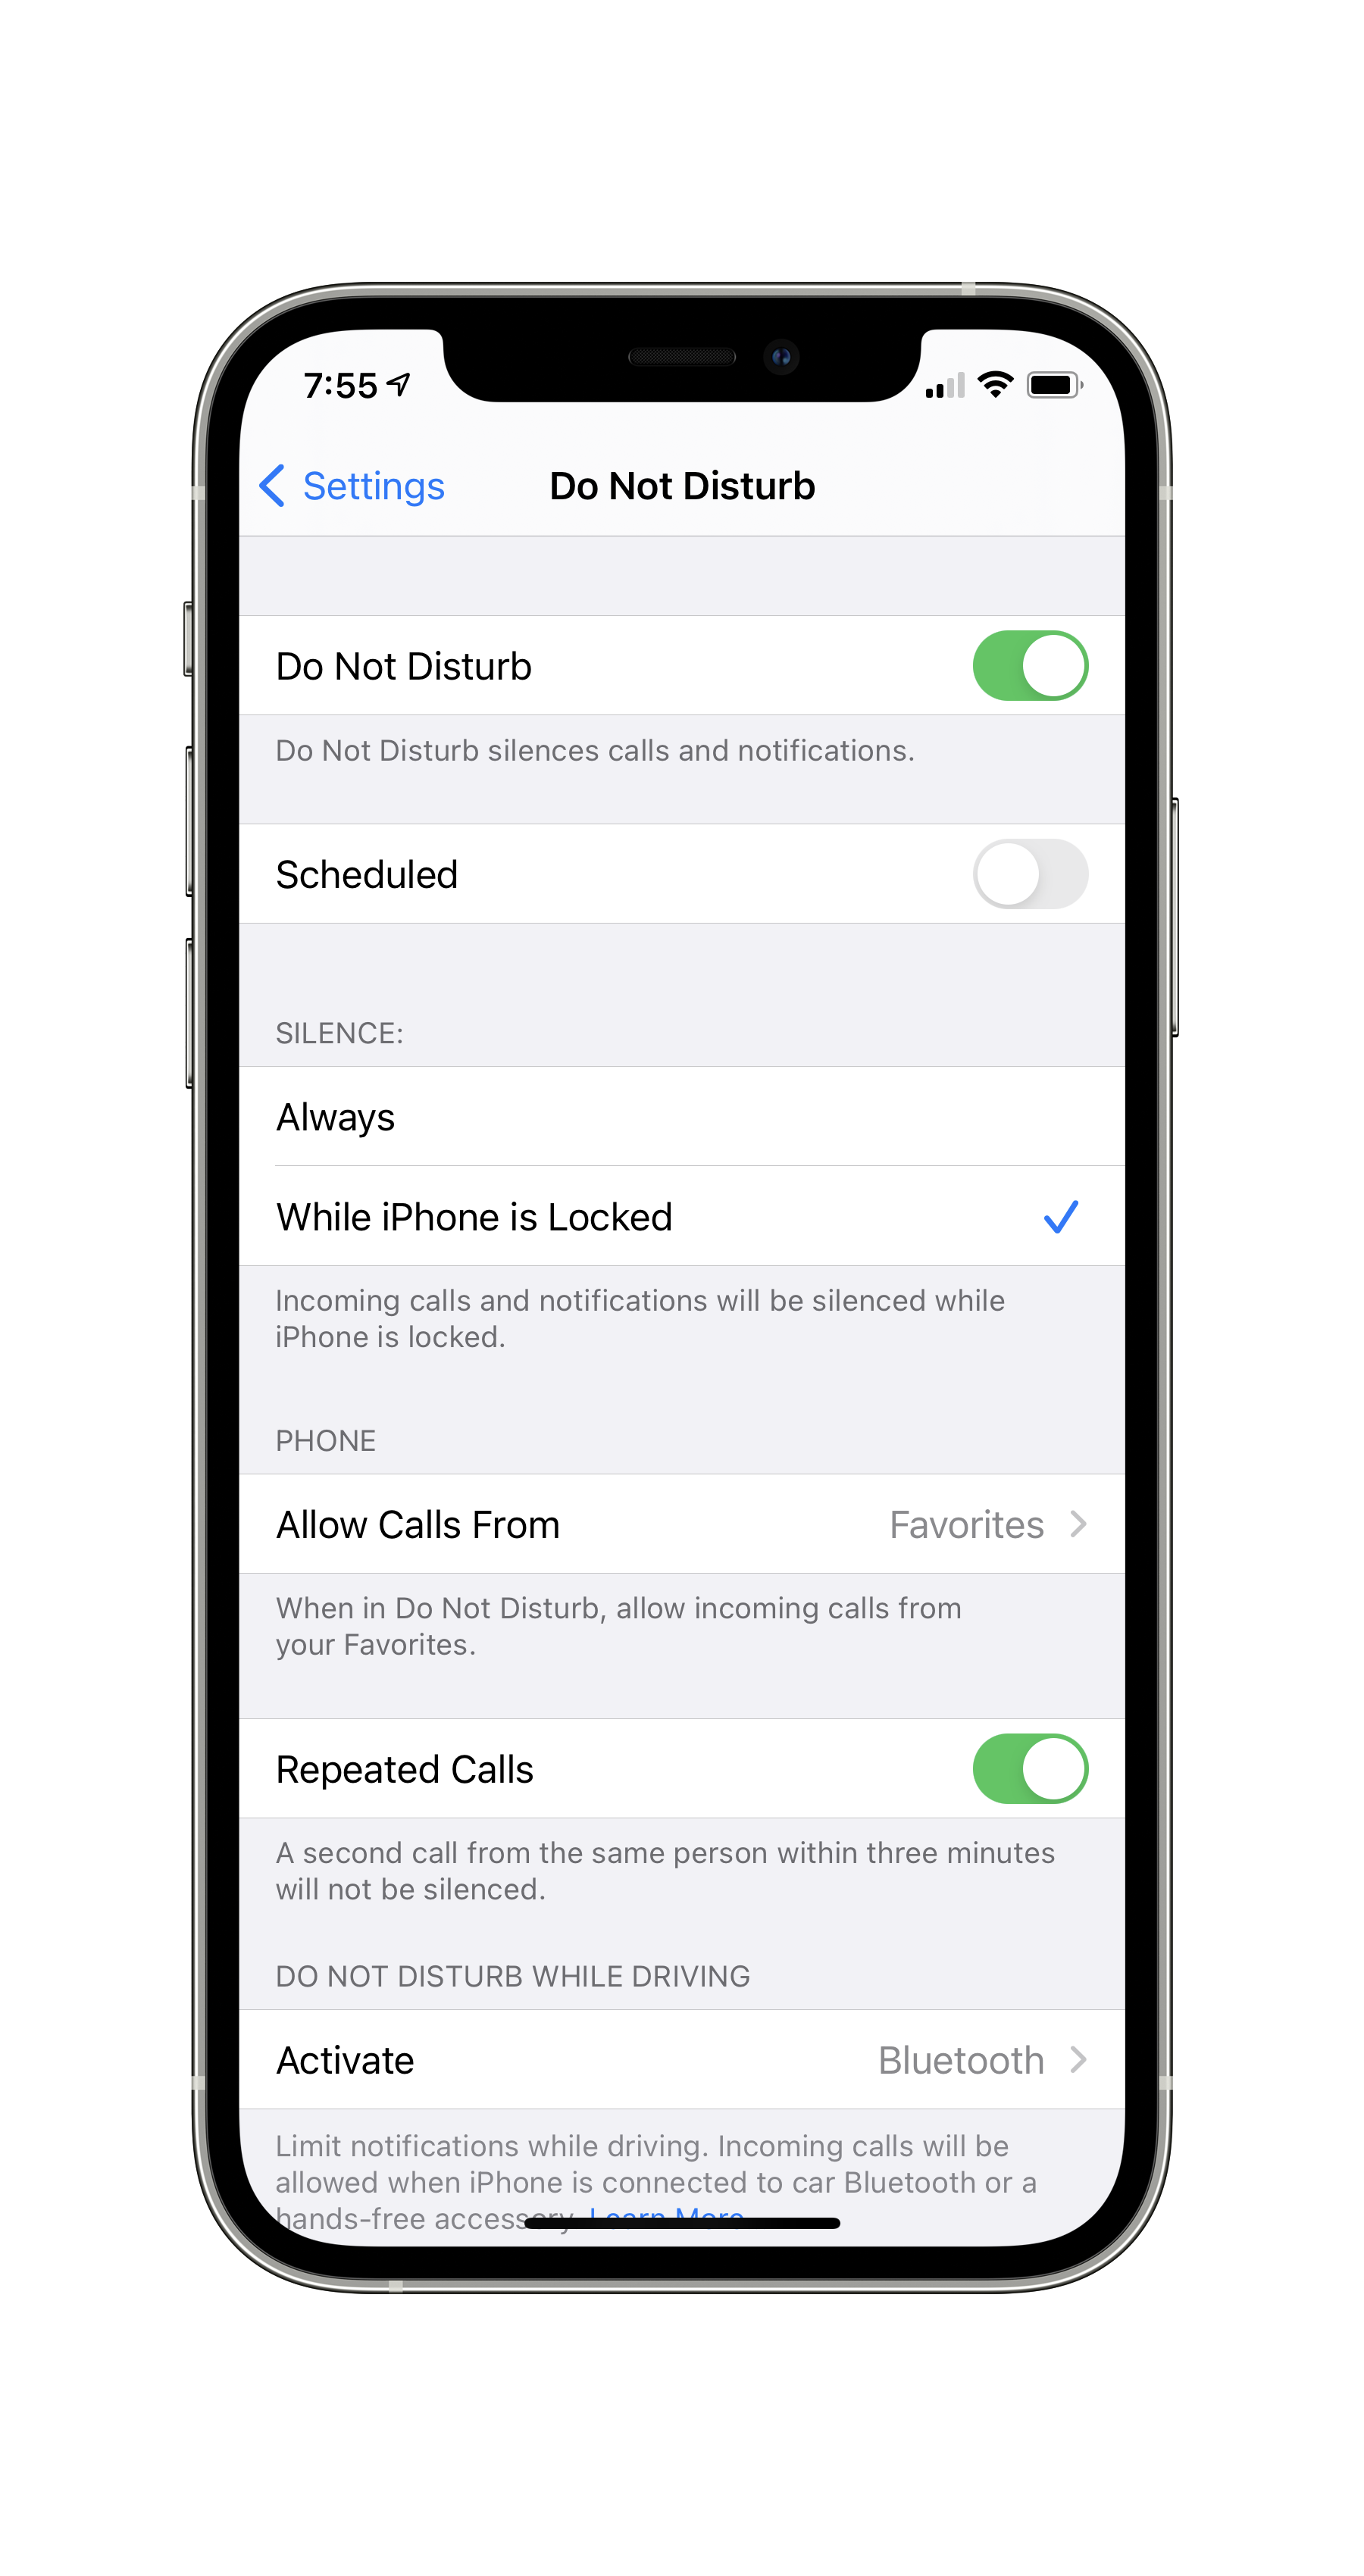 Do Not Disturb options in the iOS Settings app.